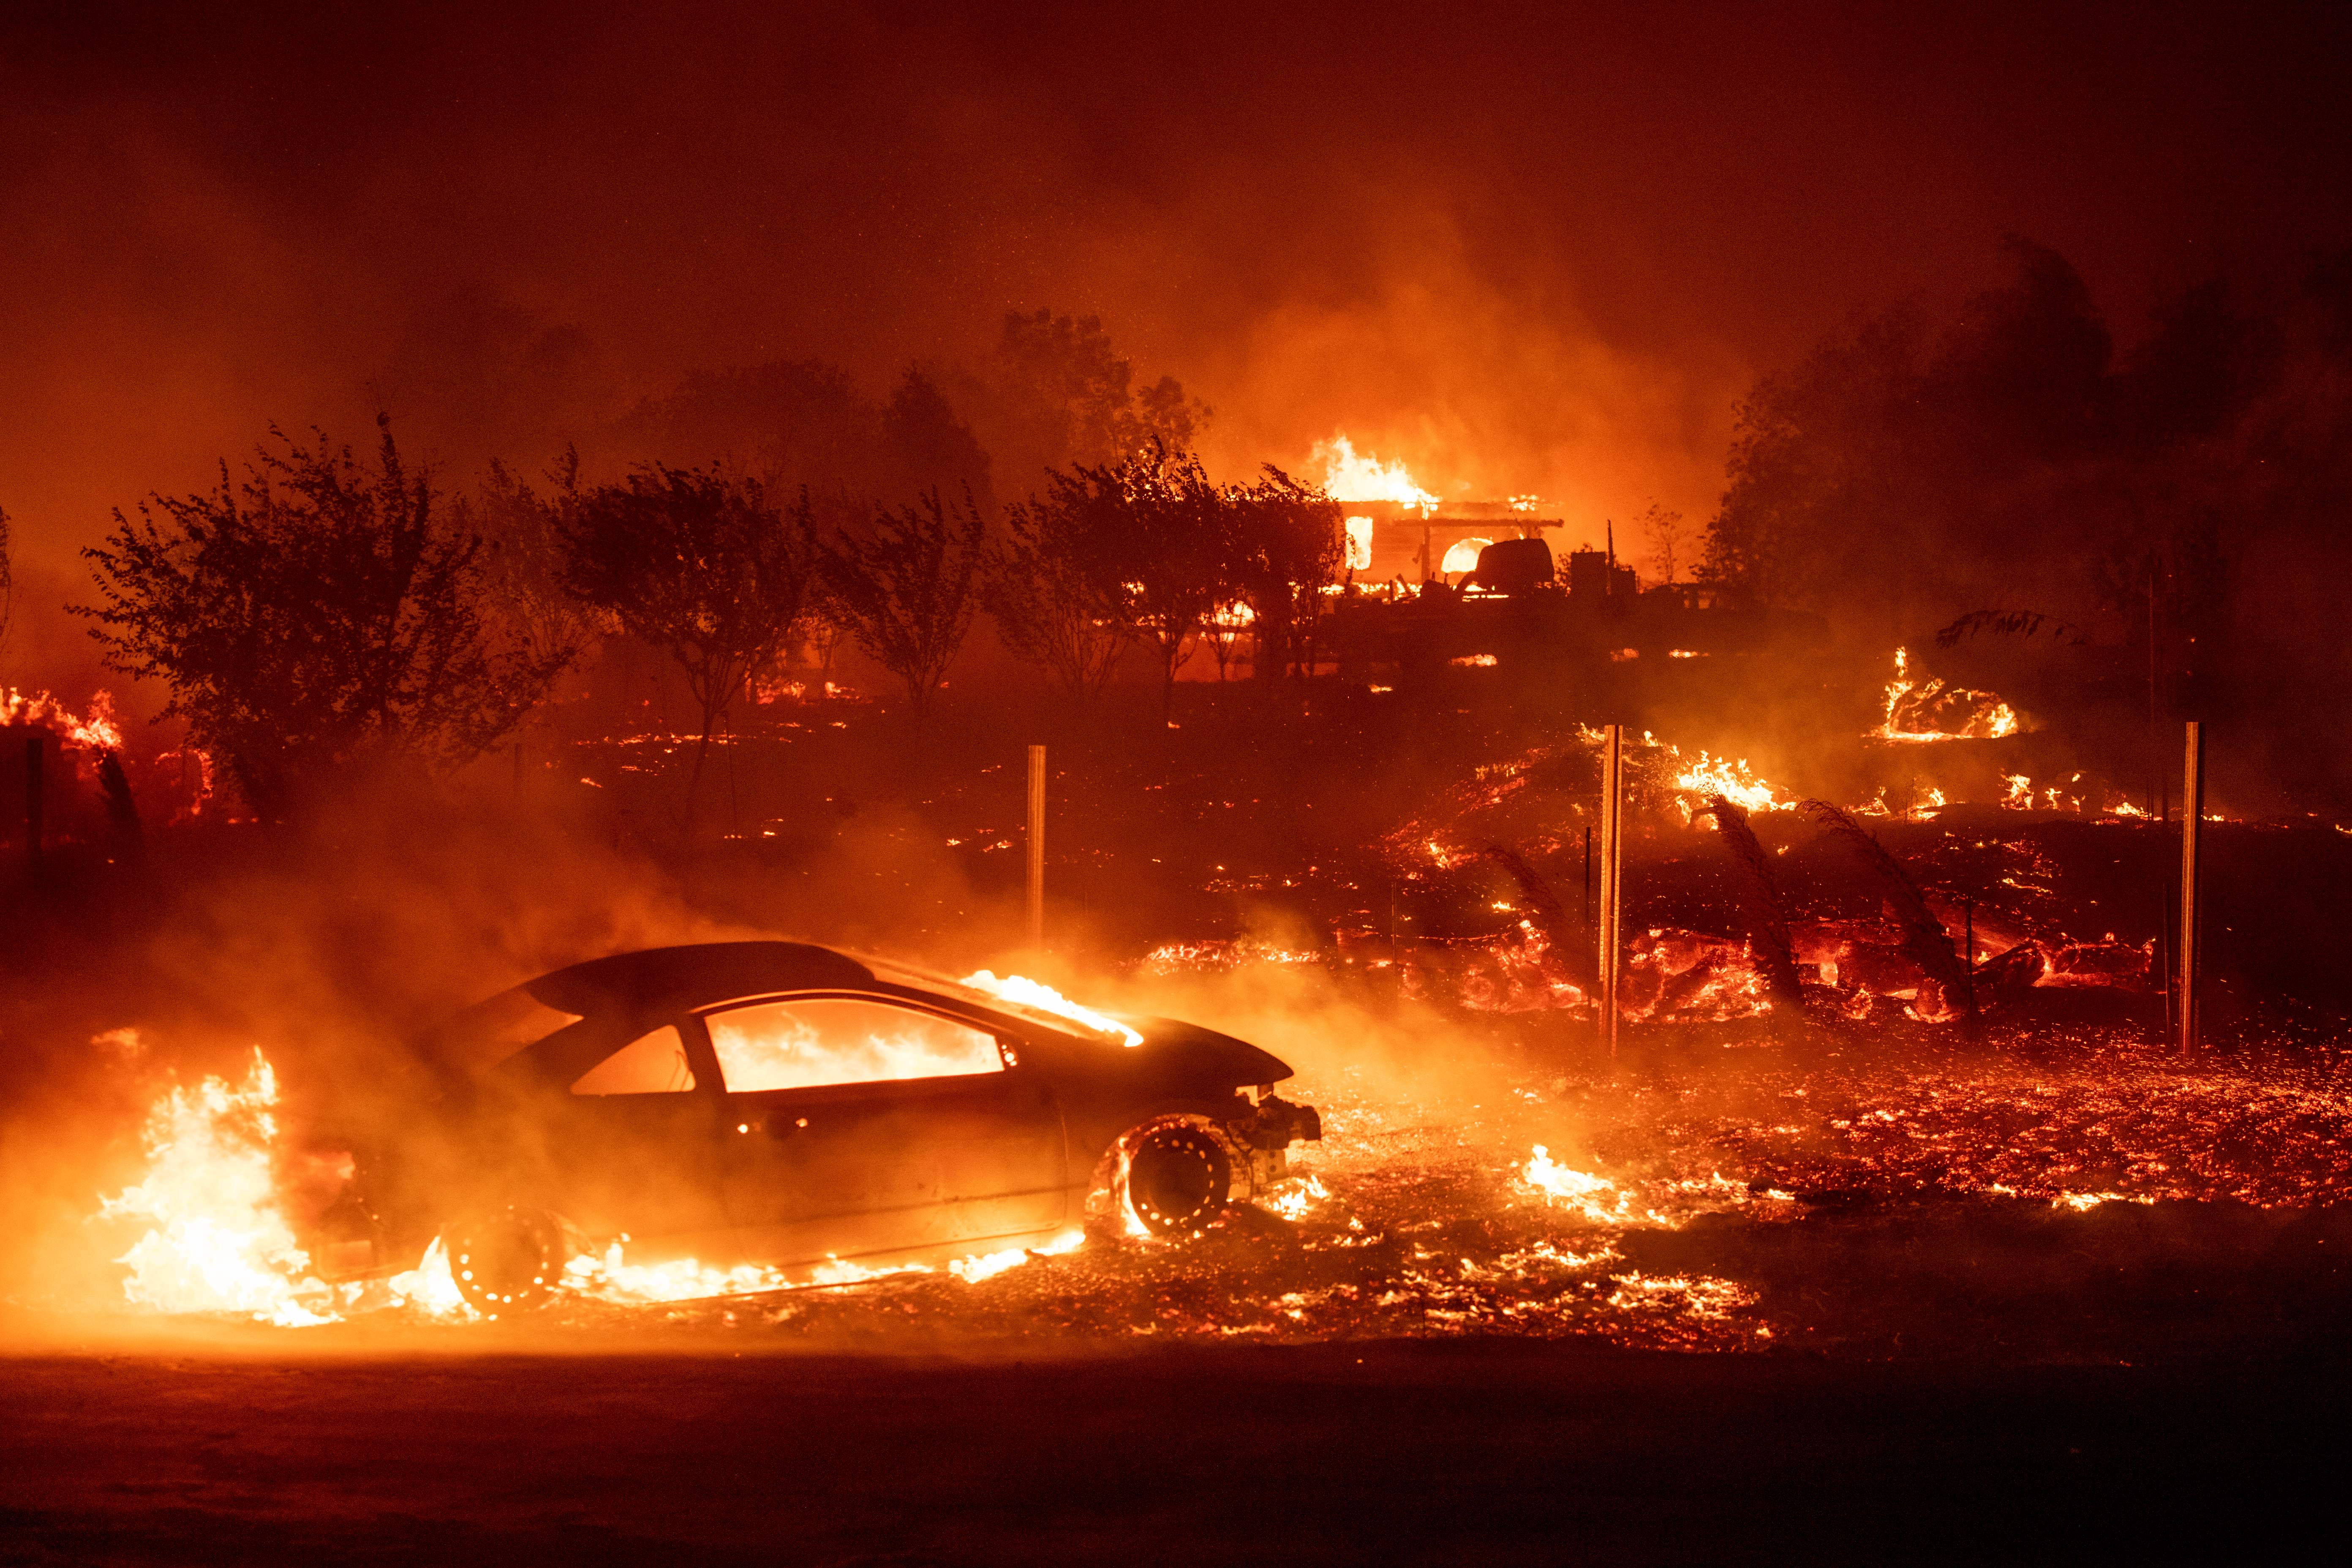 The Camp Fire consumes vehicles and homes as it rips through Paradise, California, on November 8, 2018.